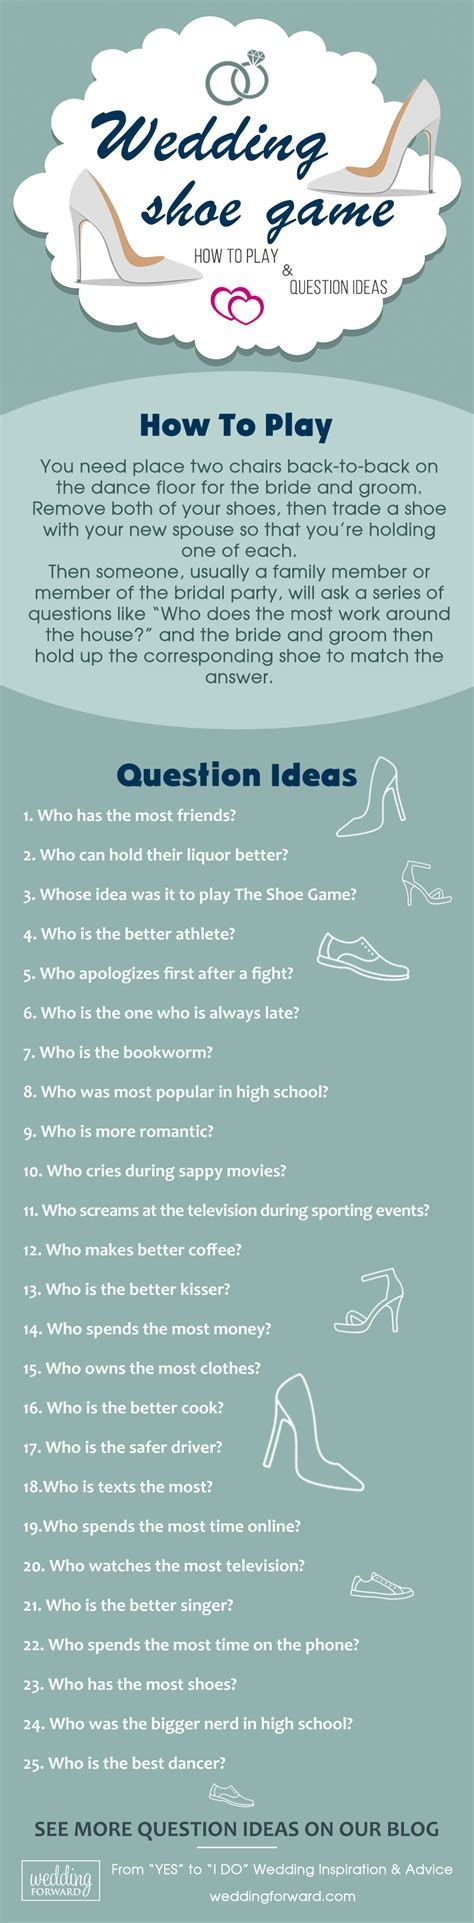 The Shoe Game ? How To Play and Question Ideas